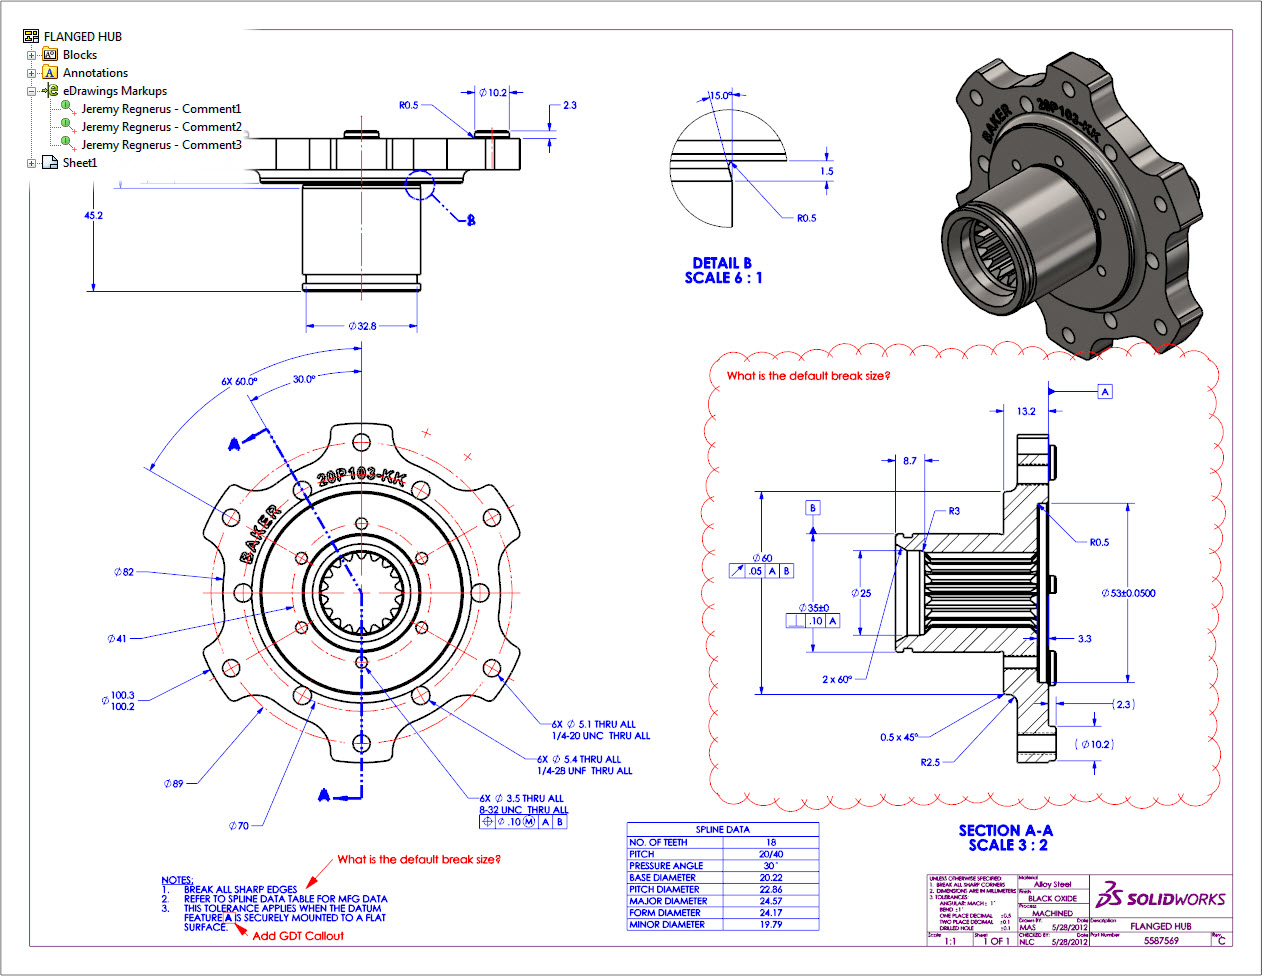 Tech Tip Tuesdays: eDrawings Markups in SOLIDWORKS Drawings